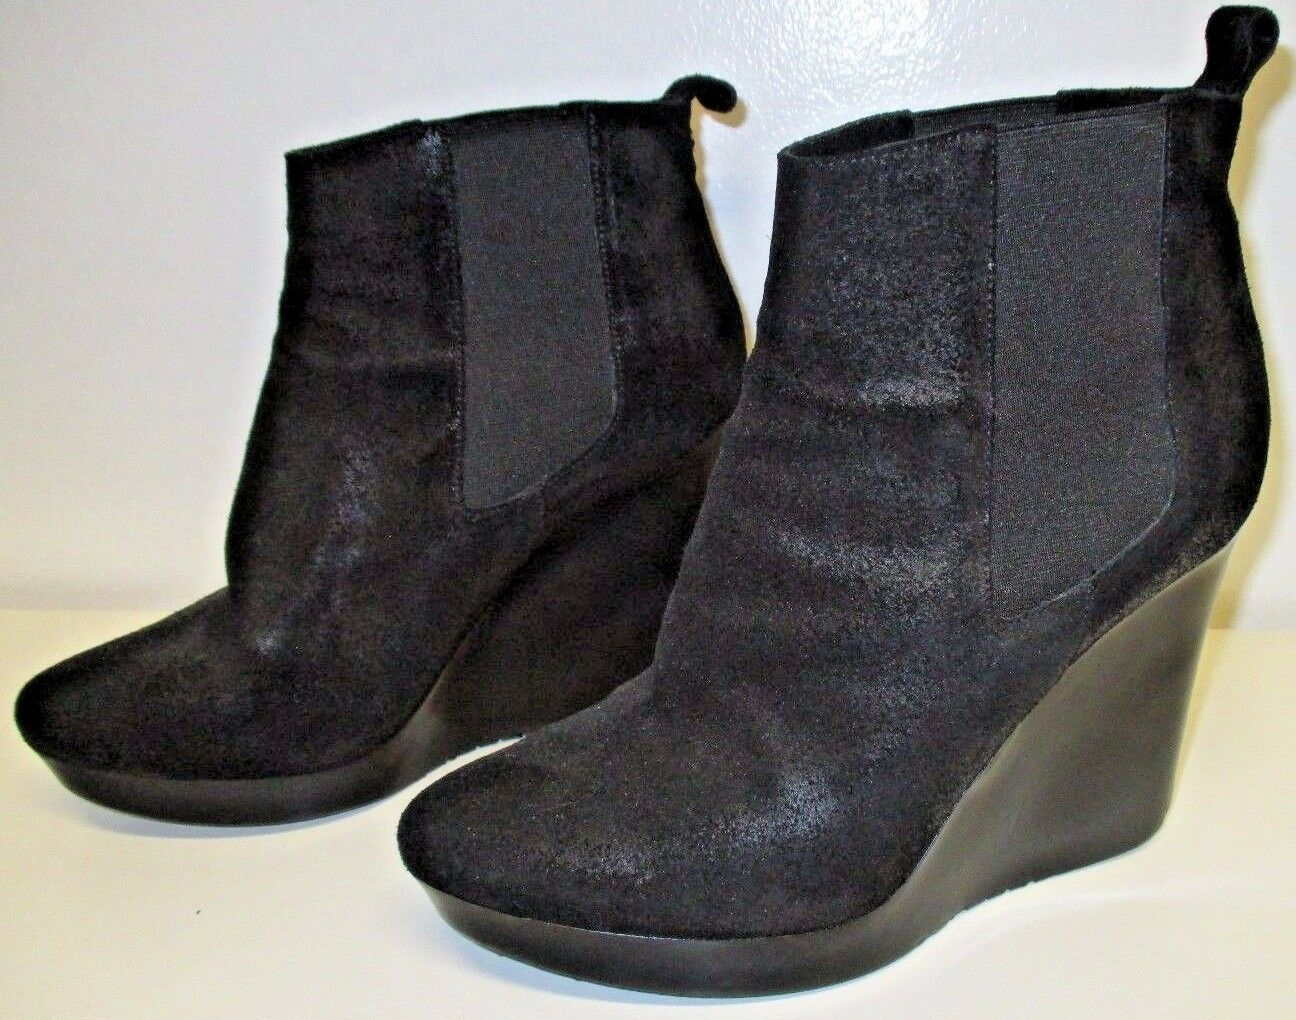 JIMMY CHOO Black Black Black Nubuck Leather Wedge Booties with Elastic Inserts - Size 40 6dbdb7